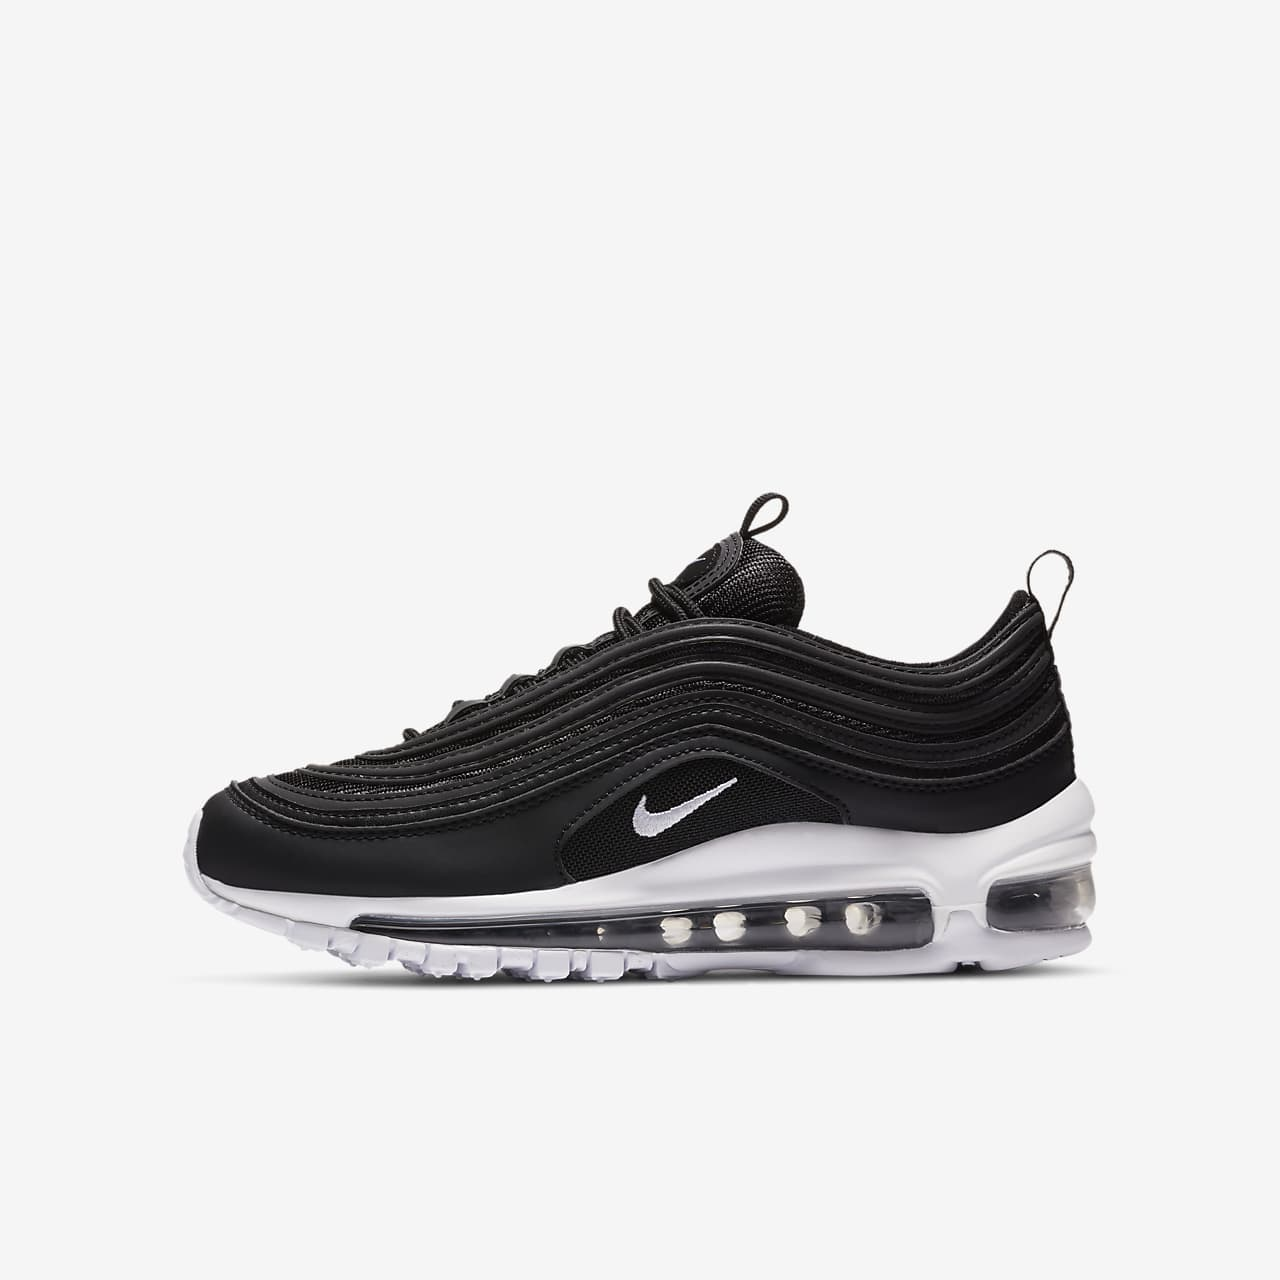 Nike Air Max 97 Ultra '17 Skepta Release Date. Nike⁠+ Launch GB